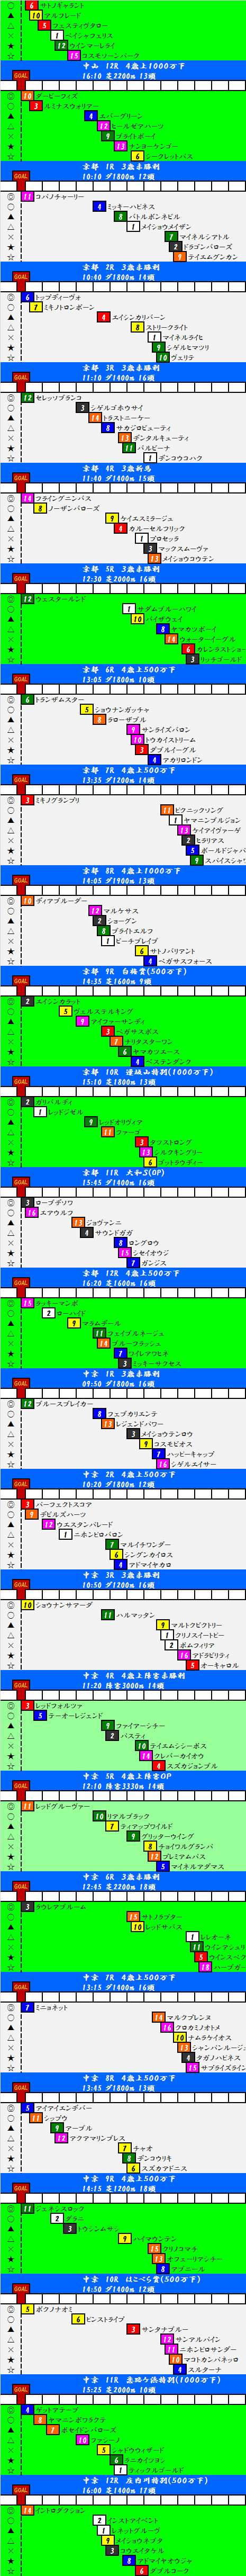 2015011702.png